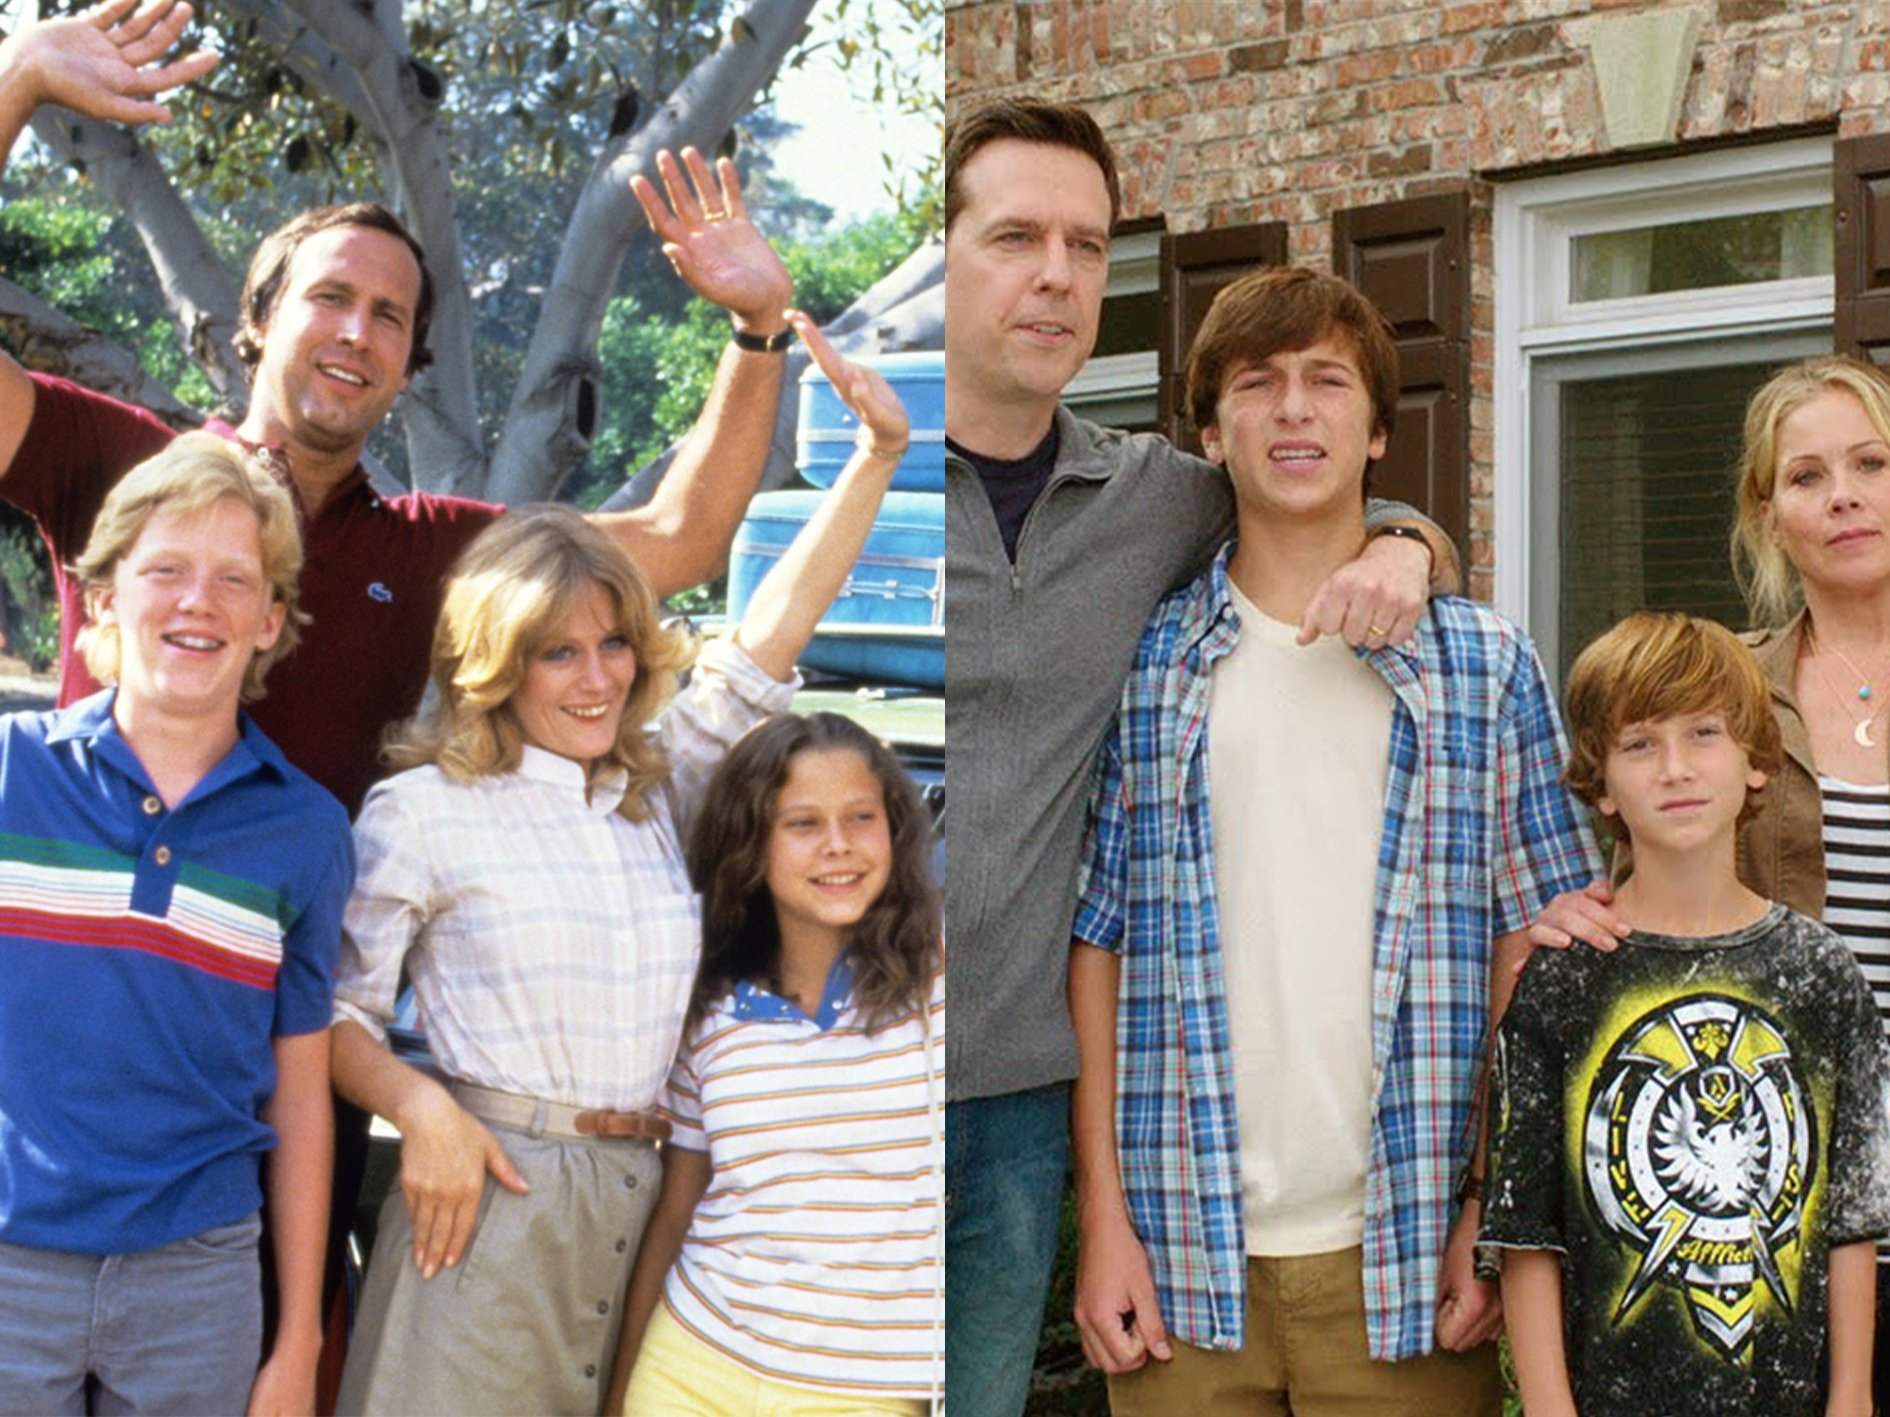 Vacation Awful Remakes Of Classic 80s Films That Should Have Been Left Unmade